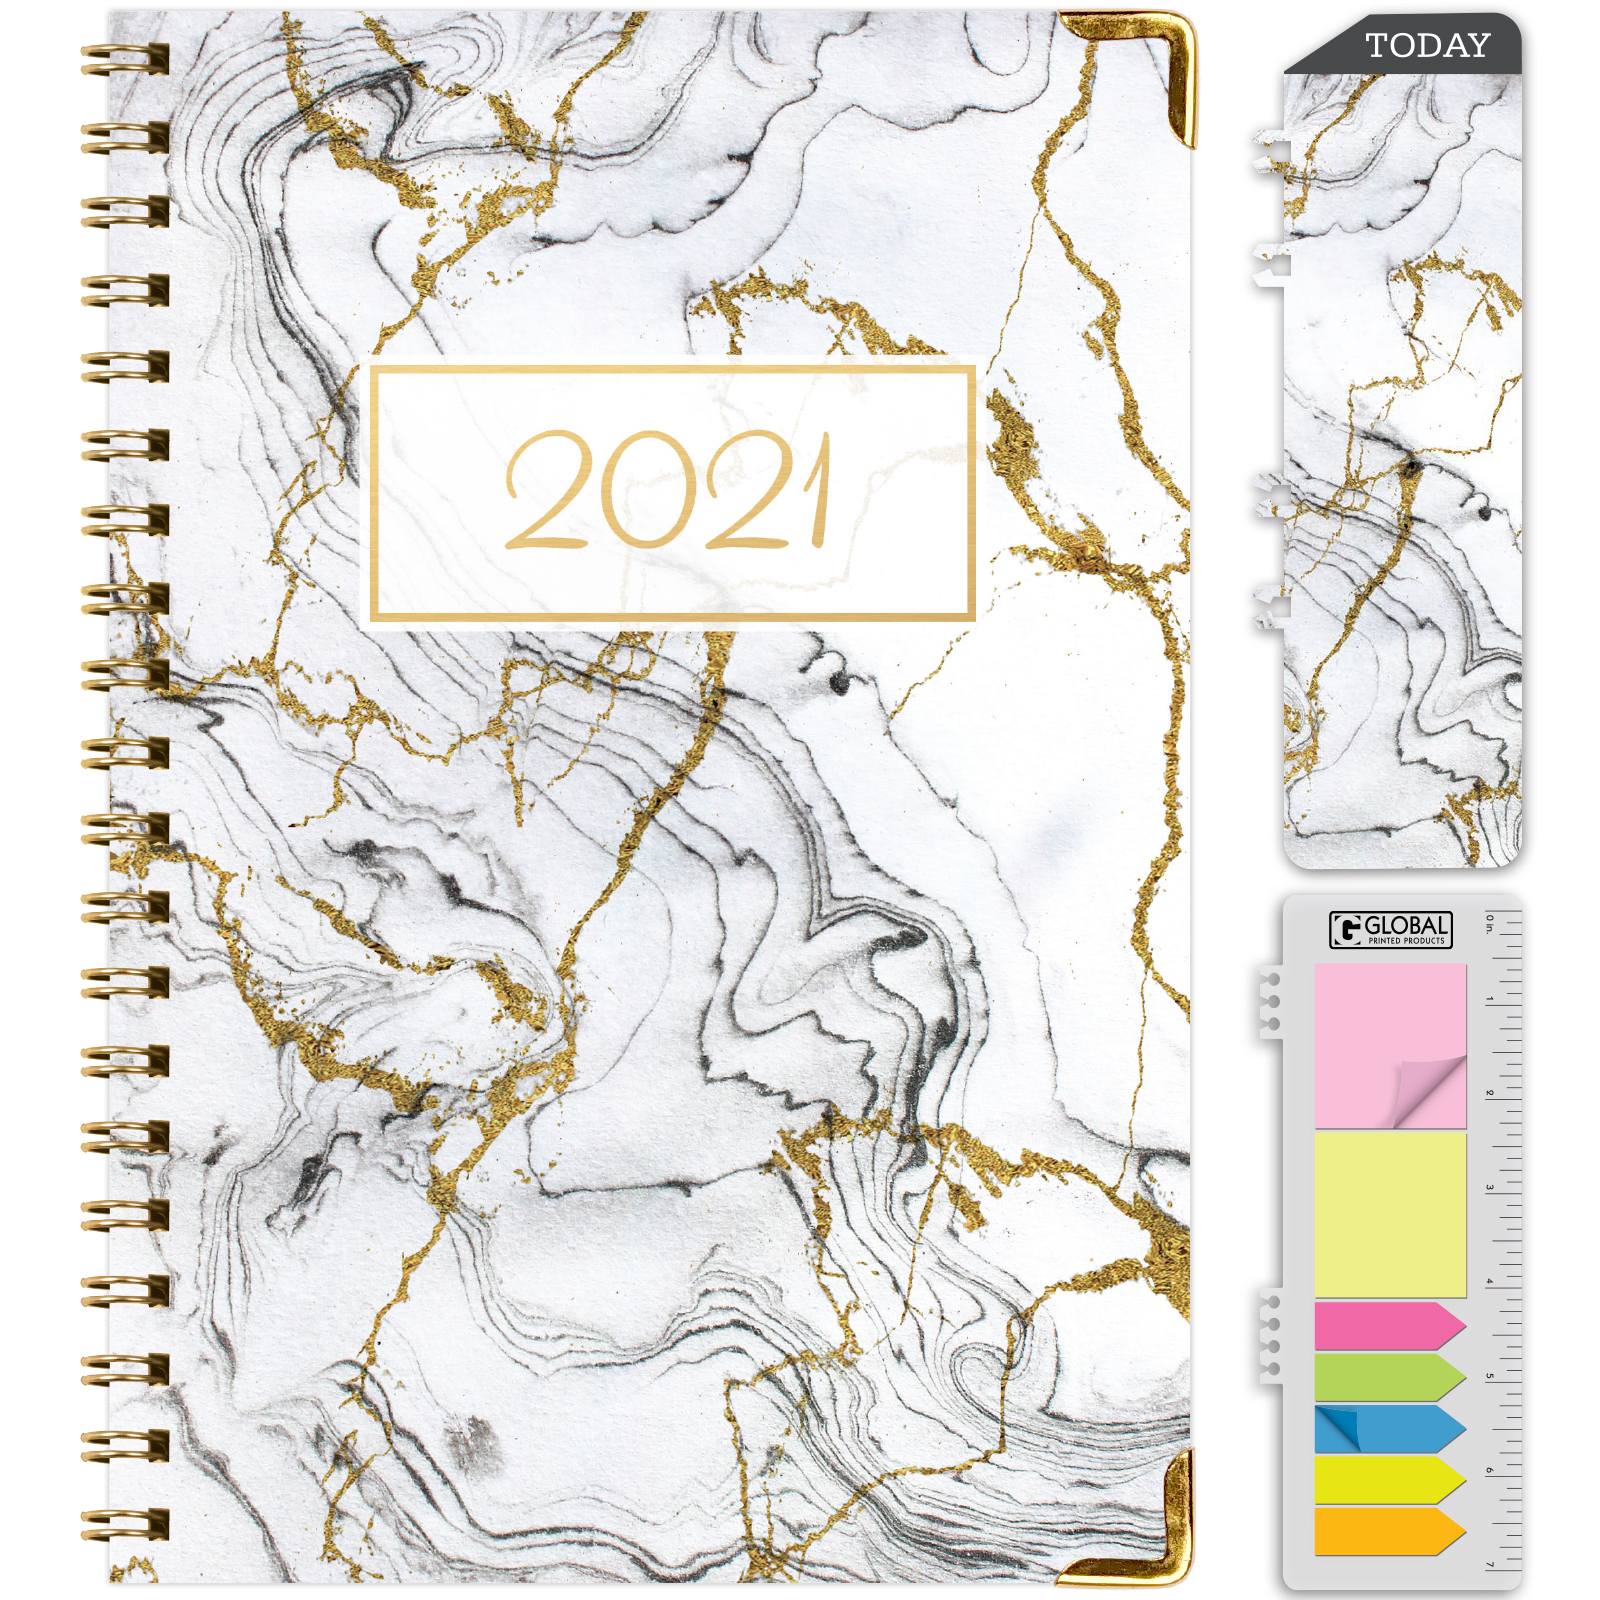 Hardcover 2021 Planner - (Nov 2020 - Dec 2021) Daily Weekly Monthly Planner  Yearly Agenda. Bonus Bookmark, Pocket Folder And Sticky Note Set -